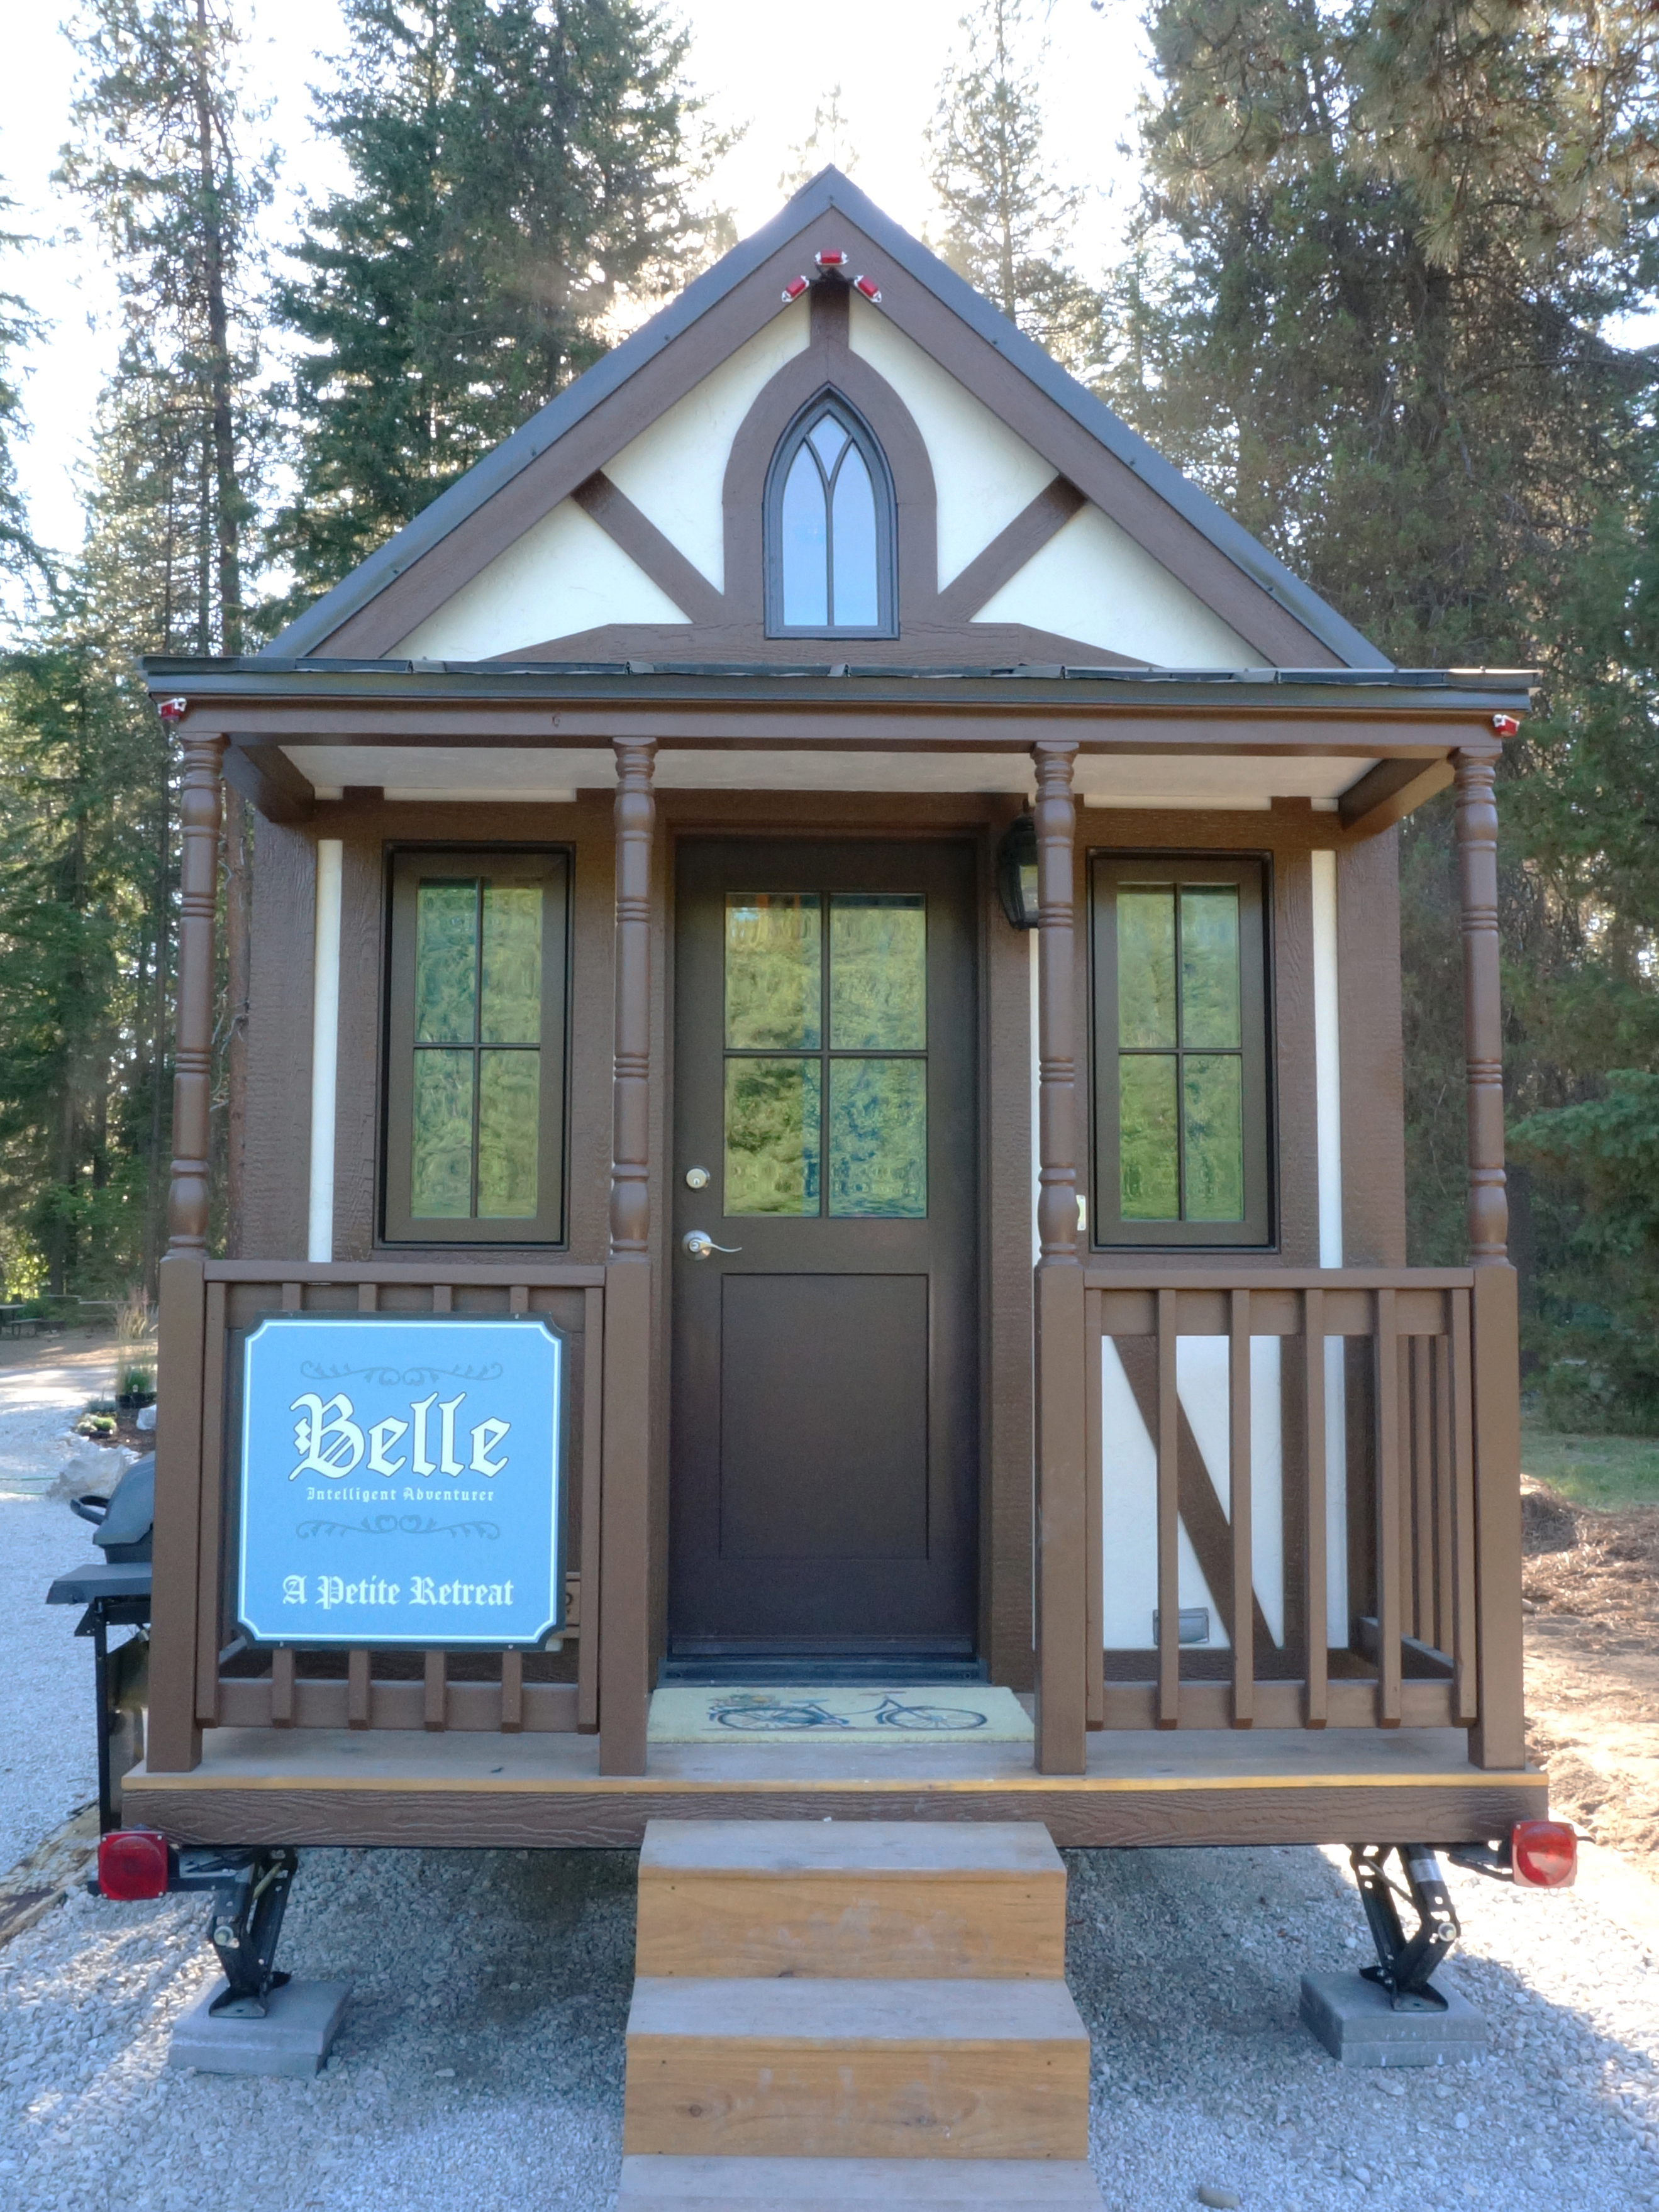 largest tiny house. Belle is the largest of tiny houses  at a comparably spacious 307 square feet Capable comfortably sleeping five on fold down couch in back Family Bavarian homes available for little Leavenworth